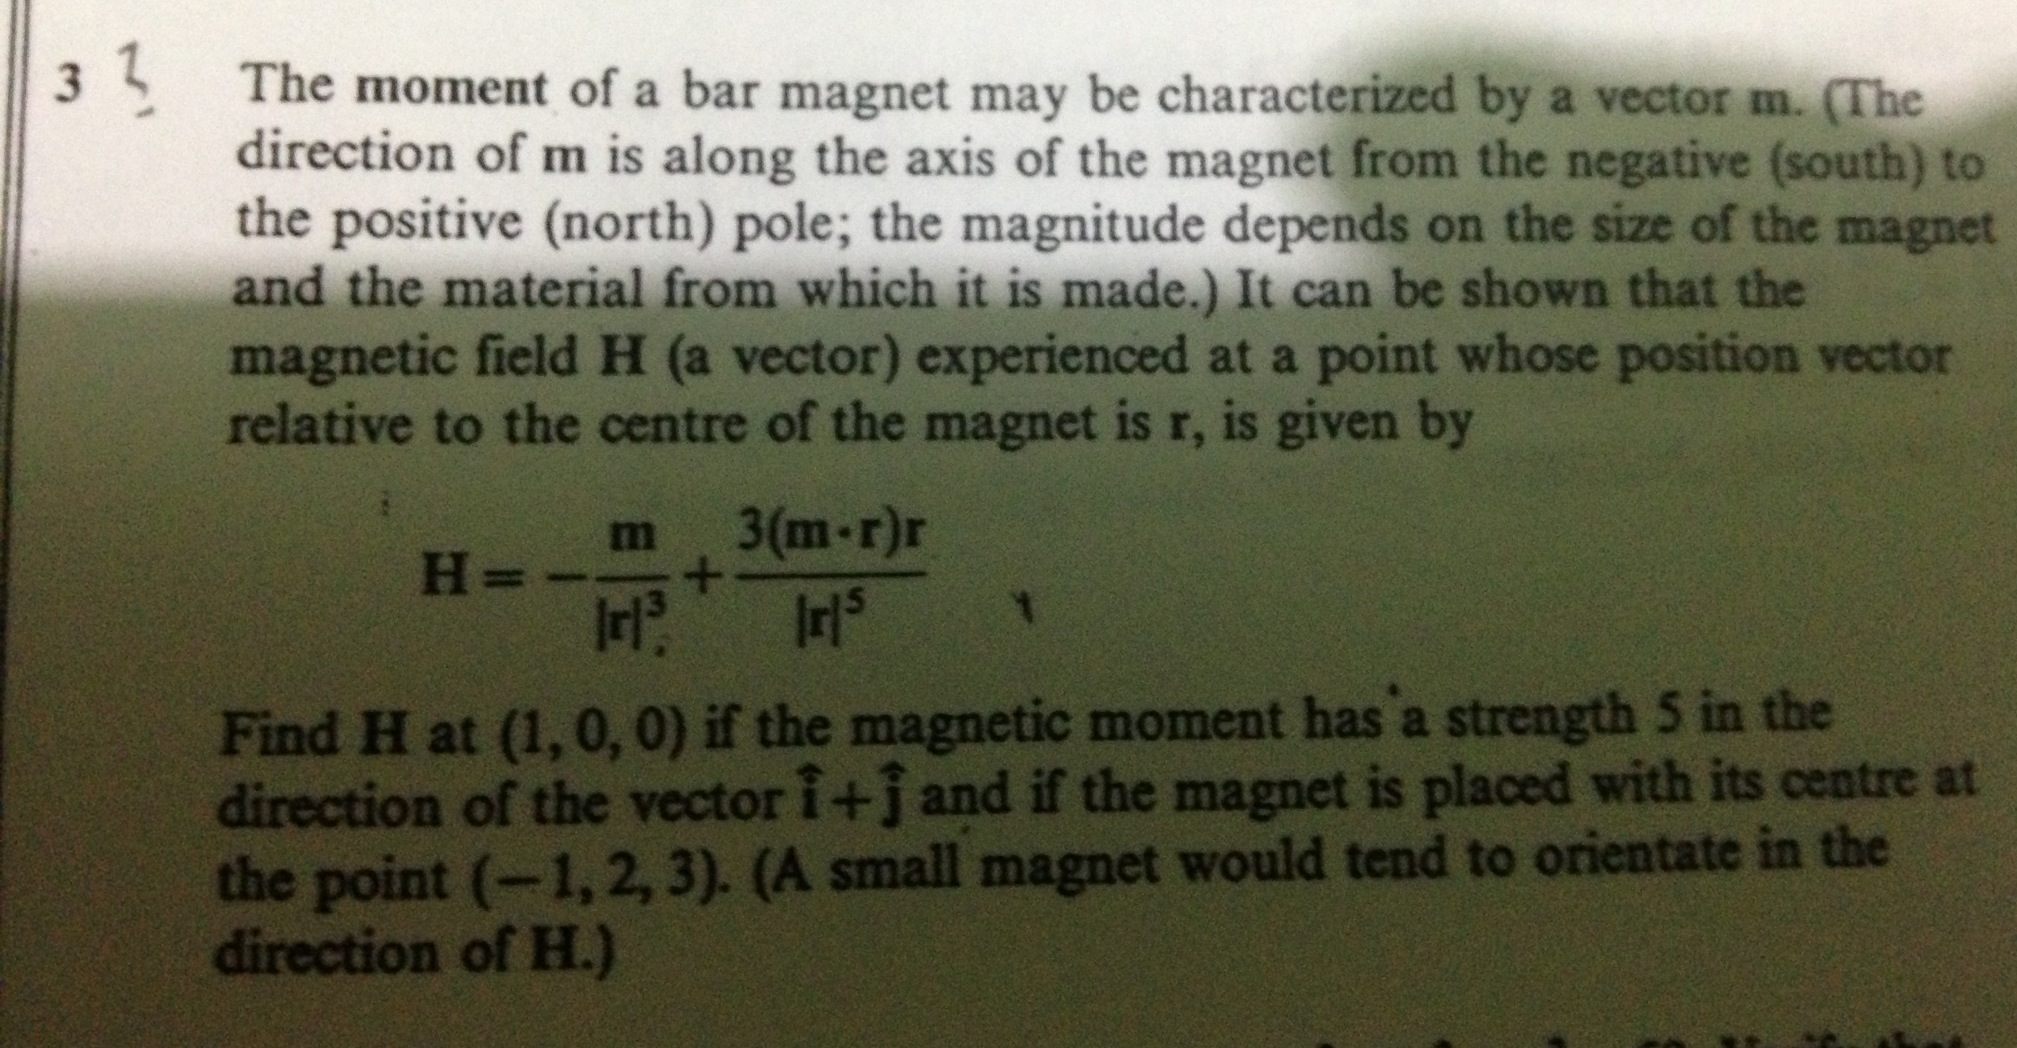 The moment of a bar magnet may be characterized by